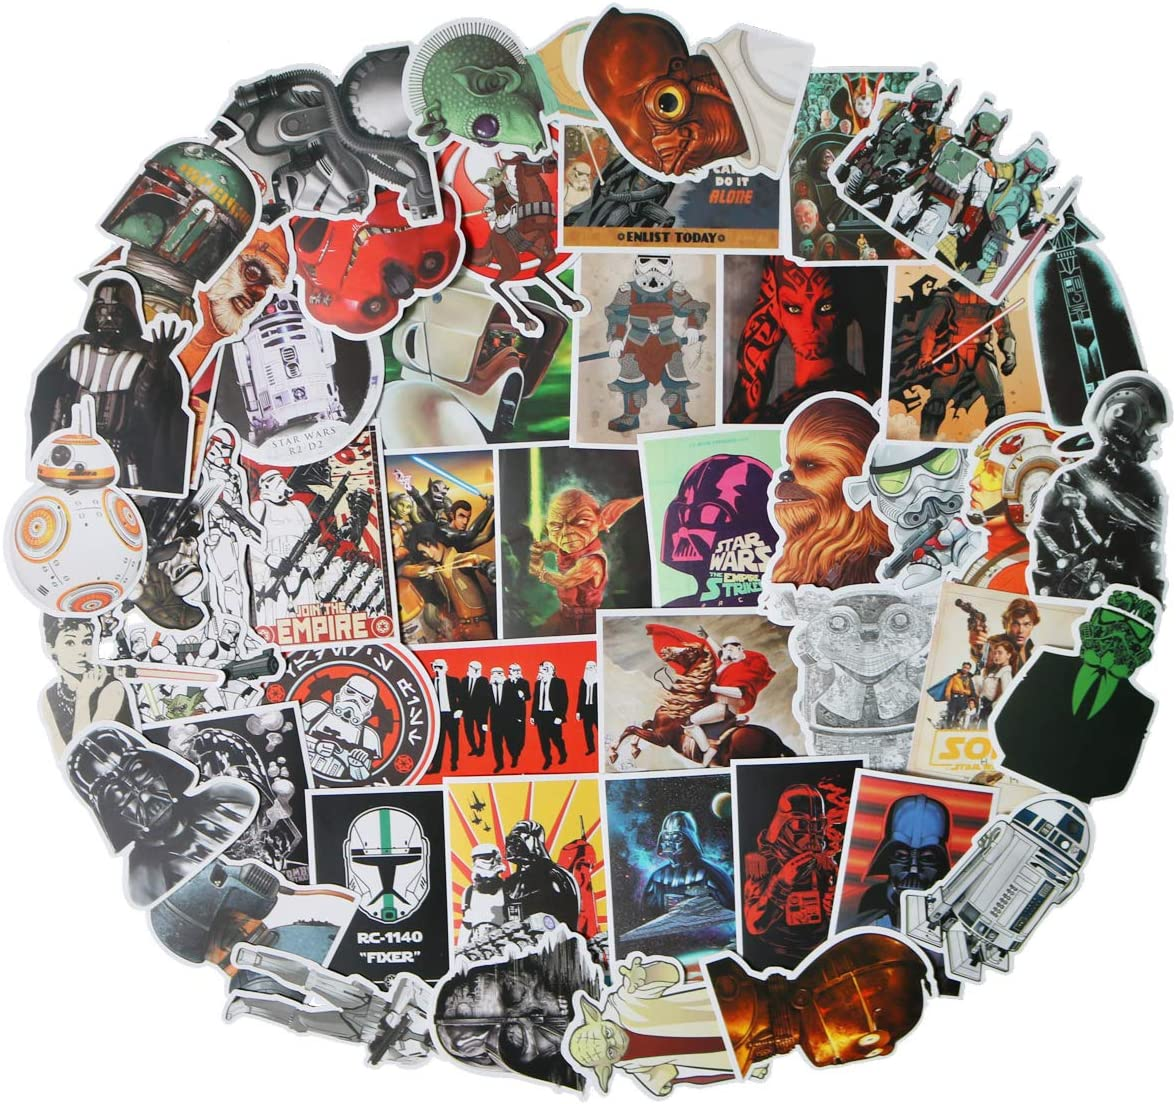 Decal Stickers 50 PCS Star Wars Laptop Sticker Waterproof Vinyl Stickers Car Sticker Motorcycle Bicycle Luggage Decal Graffiti Patches Skateboard Sticker (Star Wars)